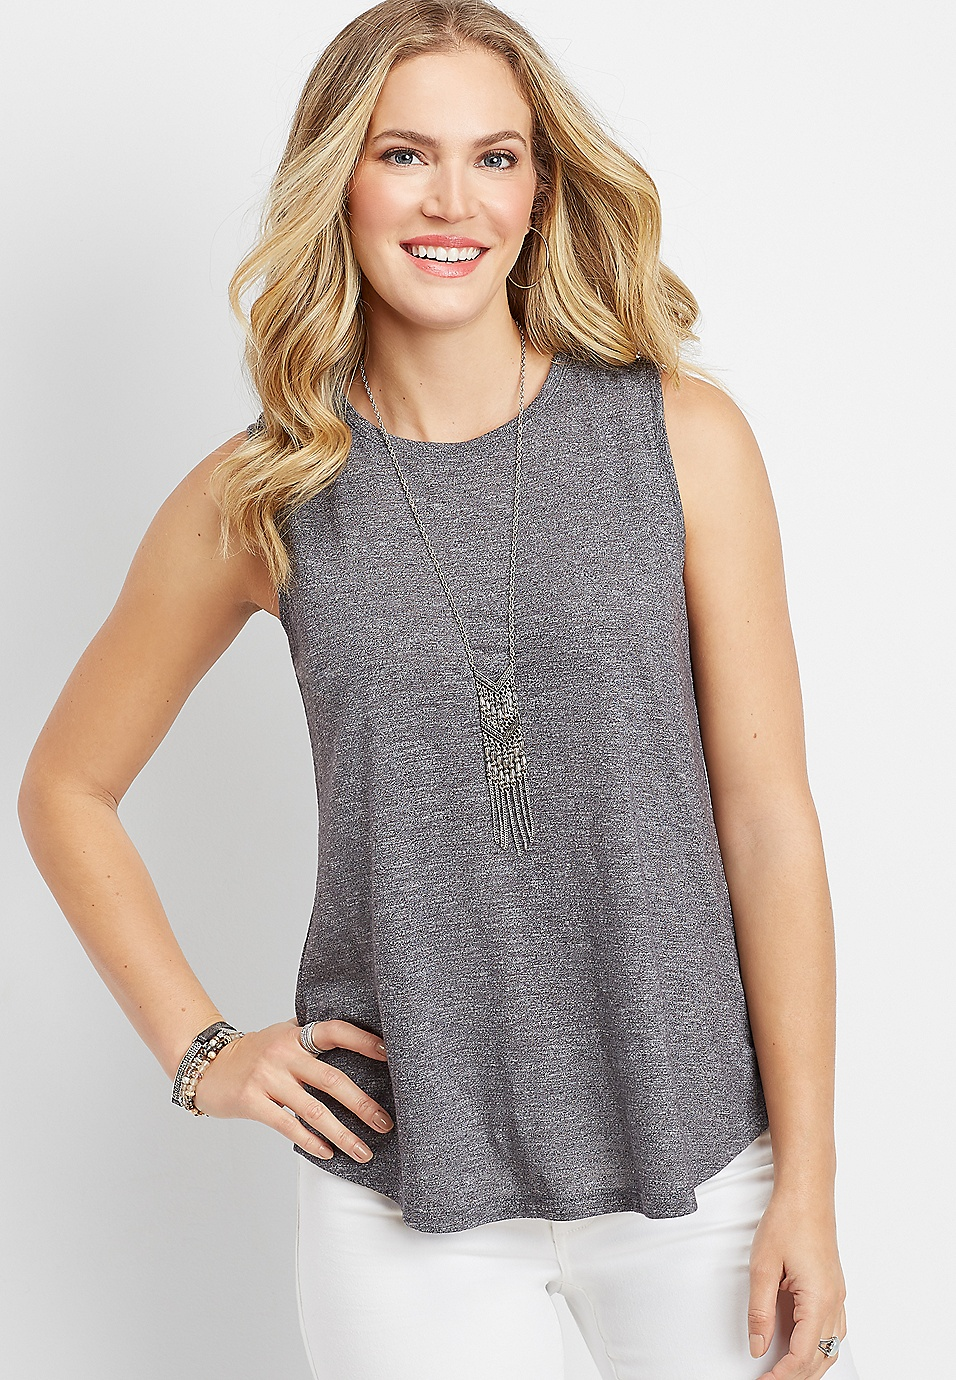 9ead3fecdeb244 24 7 solid muscle tank